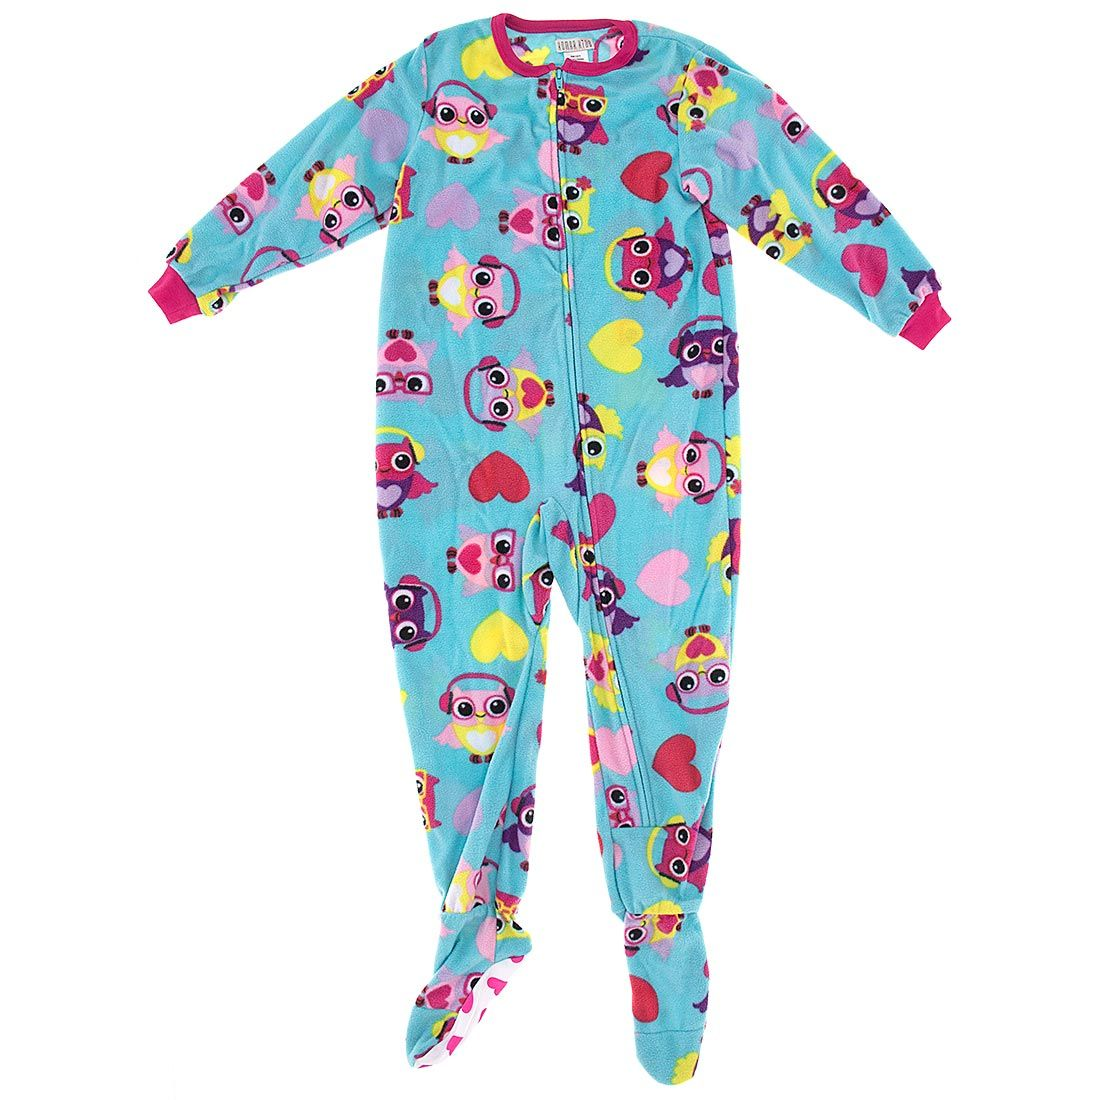 Turquoise Owl Footed Pajamas for Girls | Turquoise, Pajamas for ...